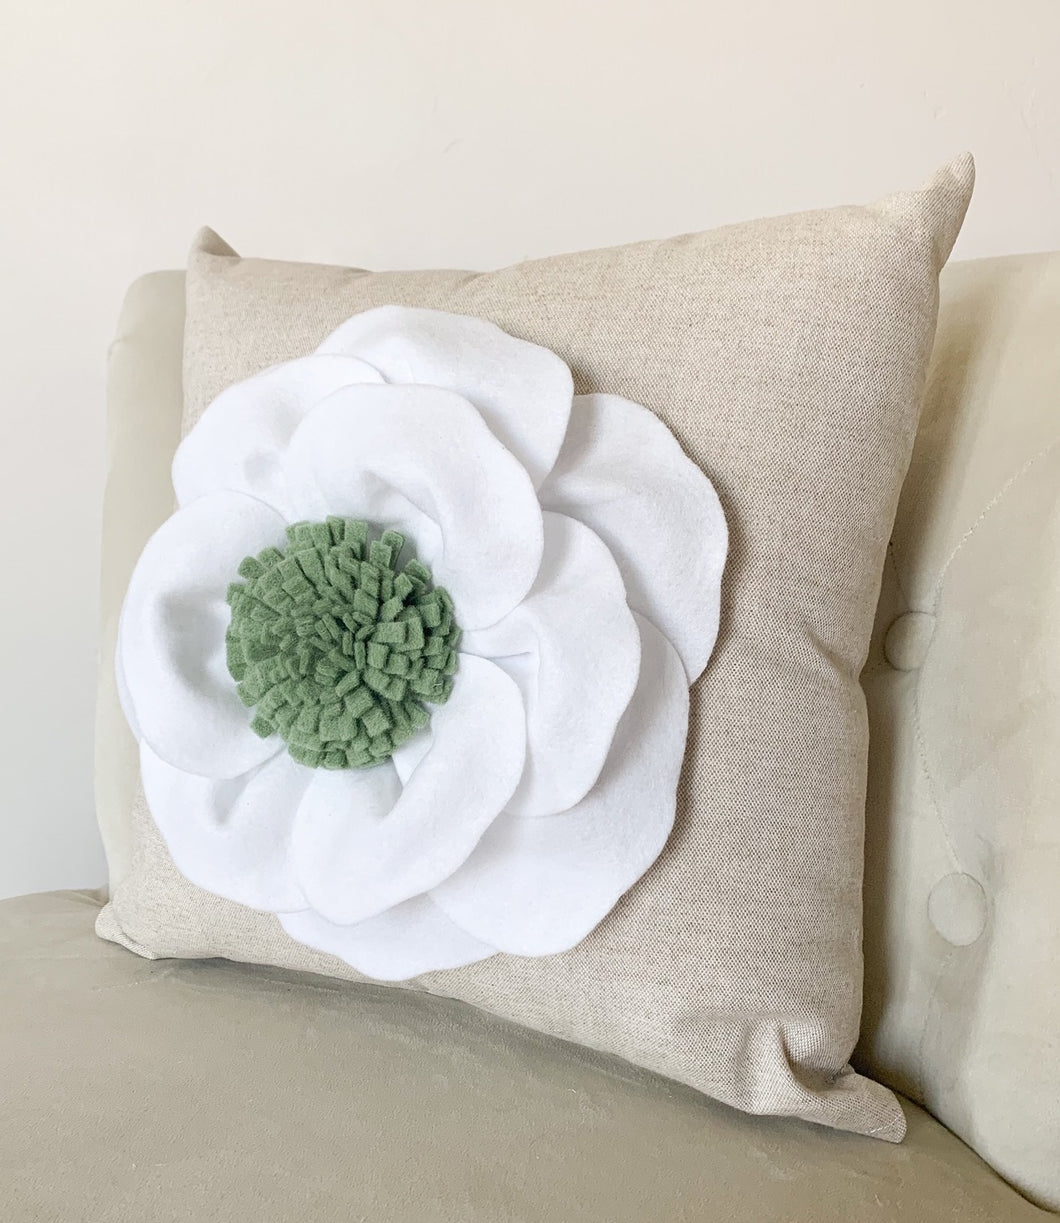 White Poppy Flower with Green Center on Oatmeal colored  Decorative Pillow